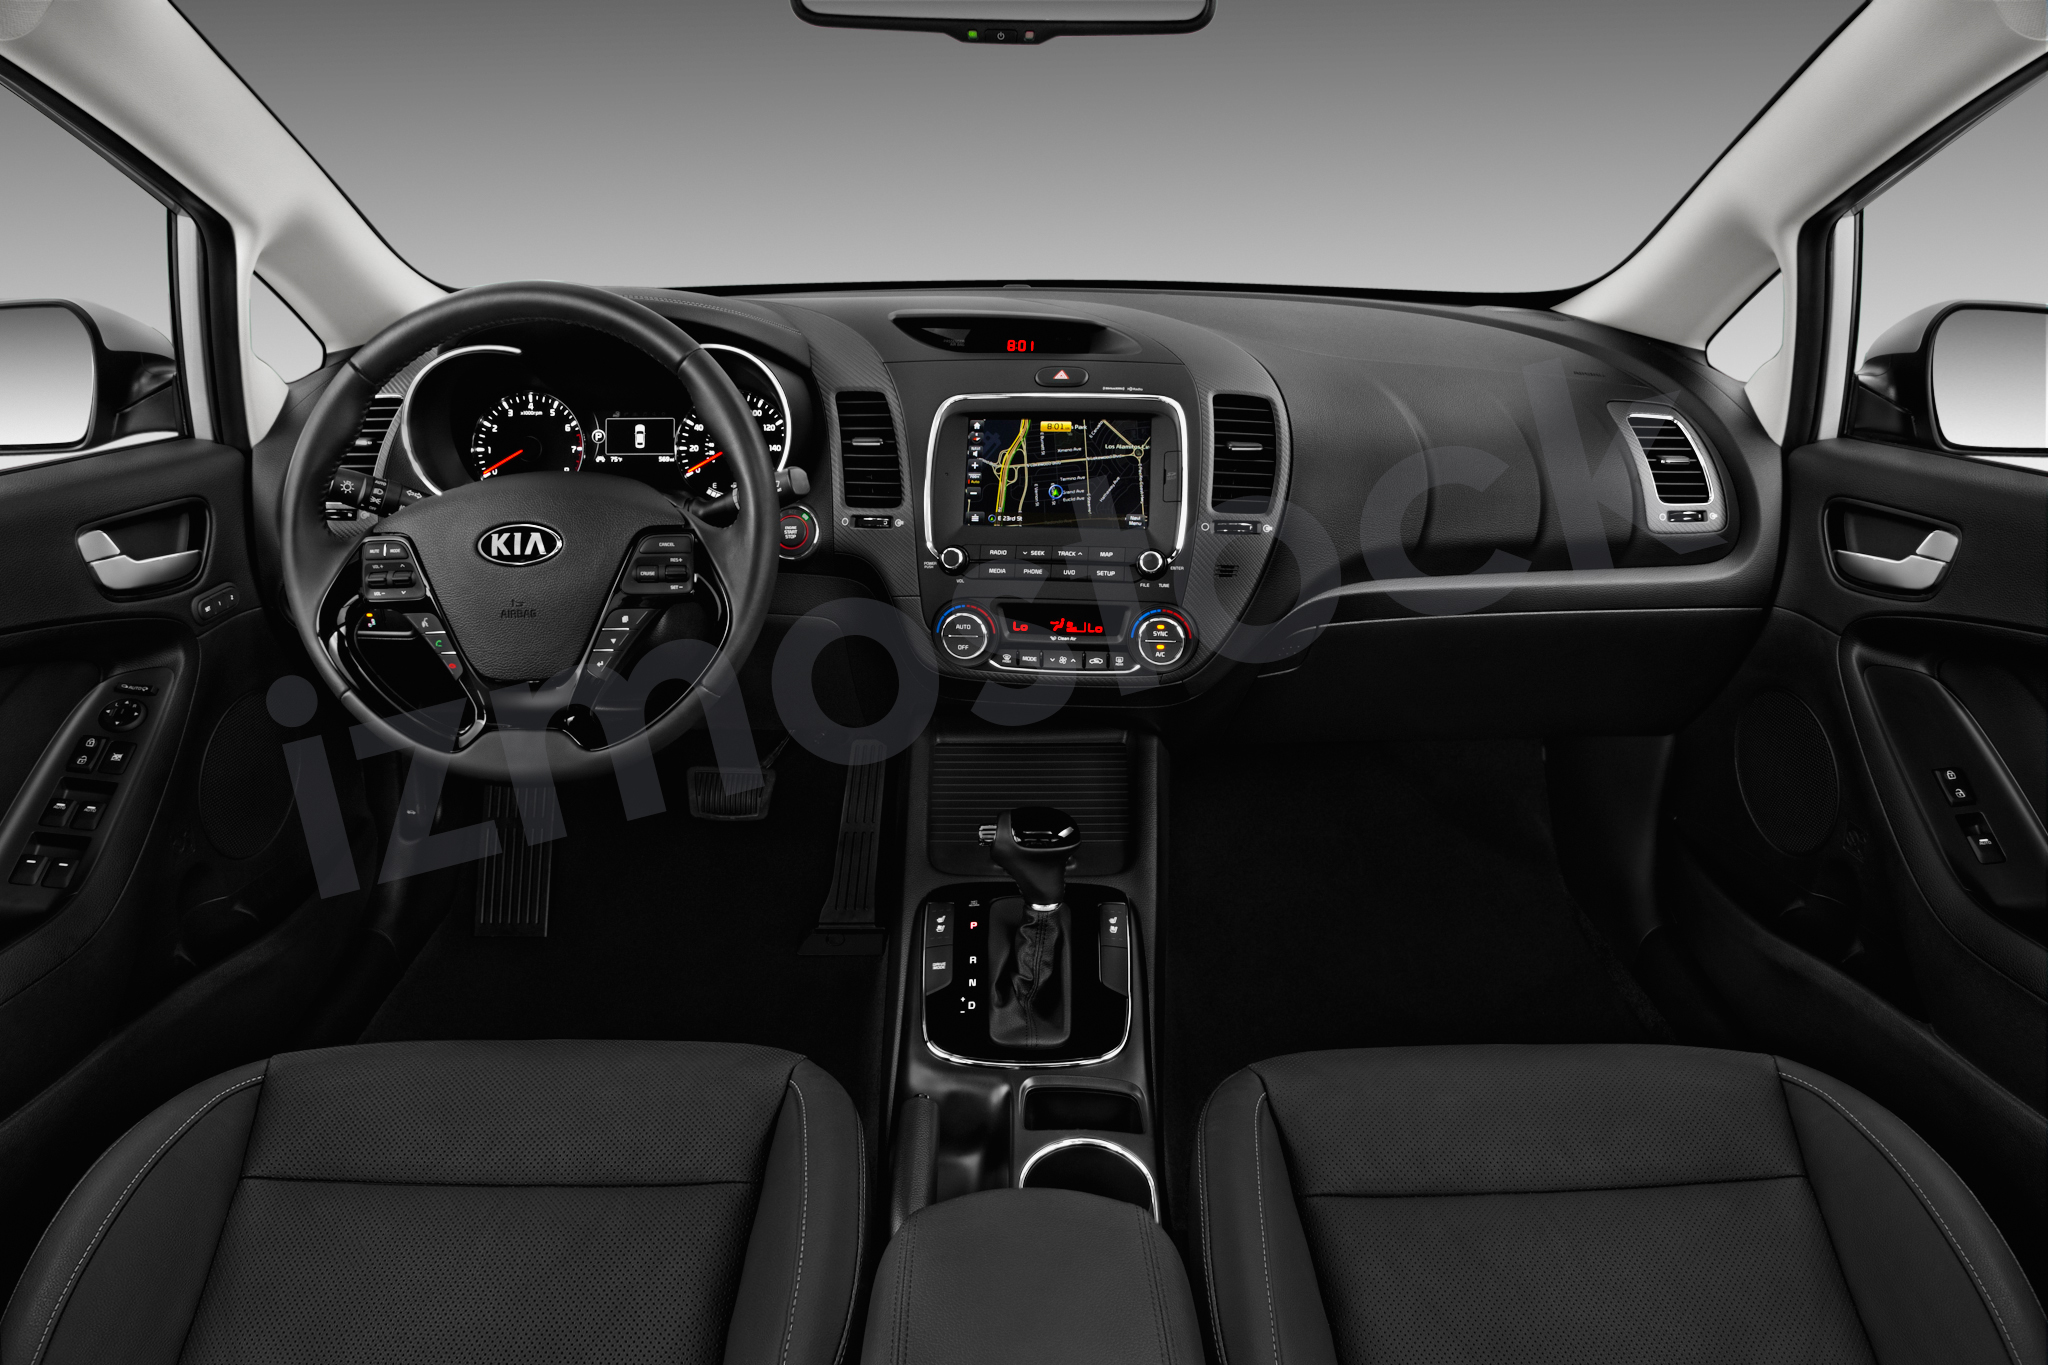 kia_17forteexsa2a_dashboard